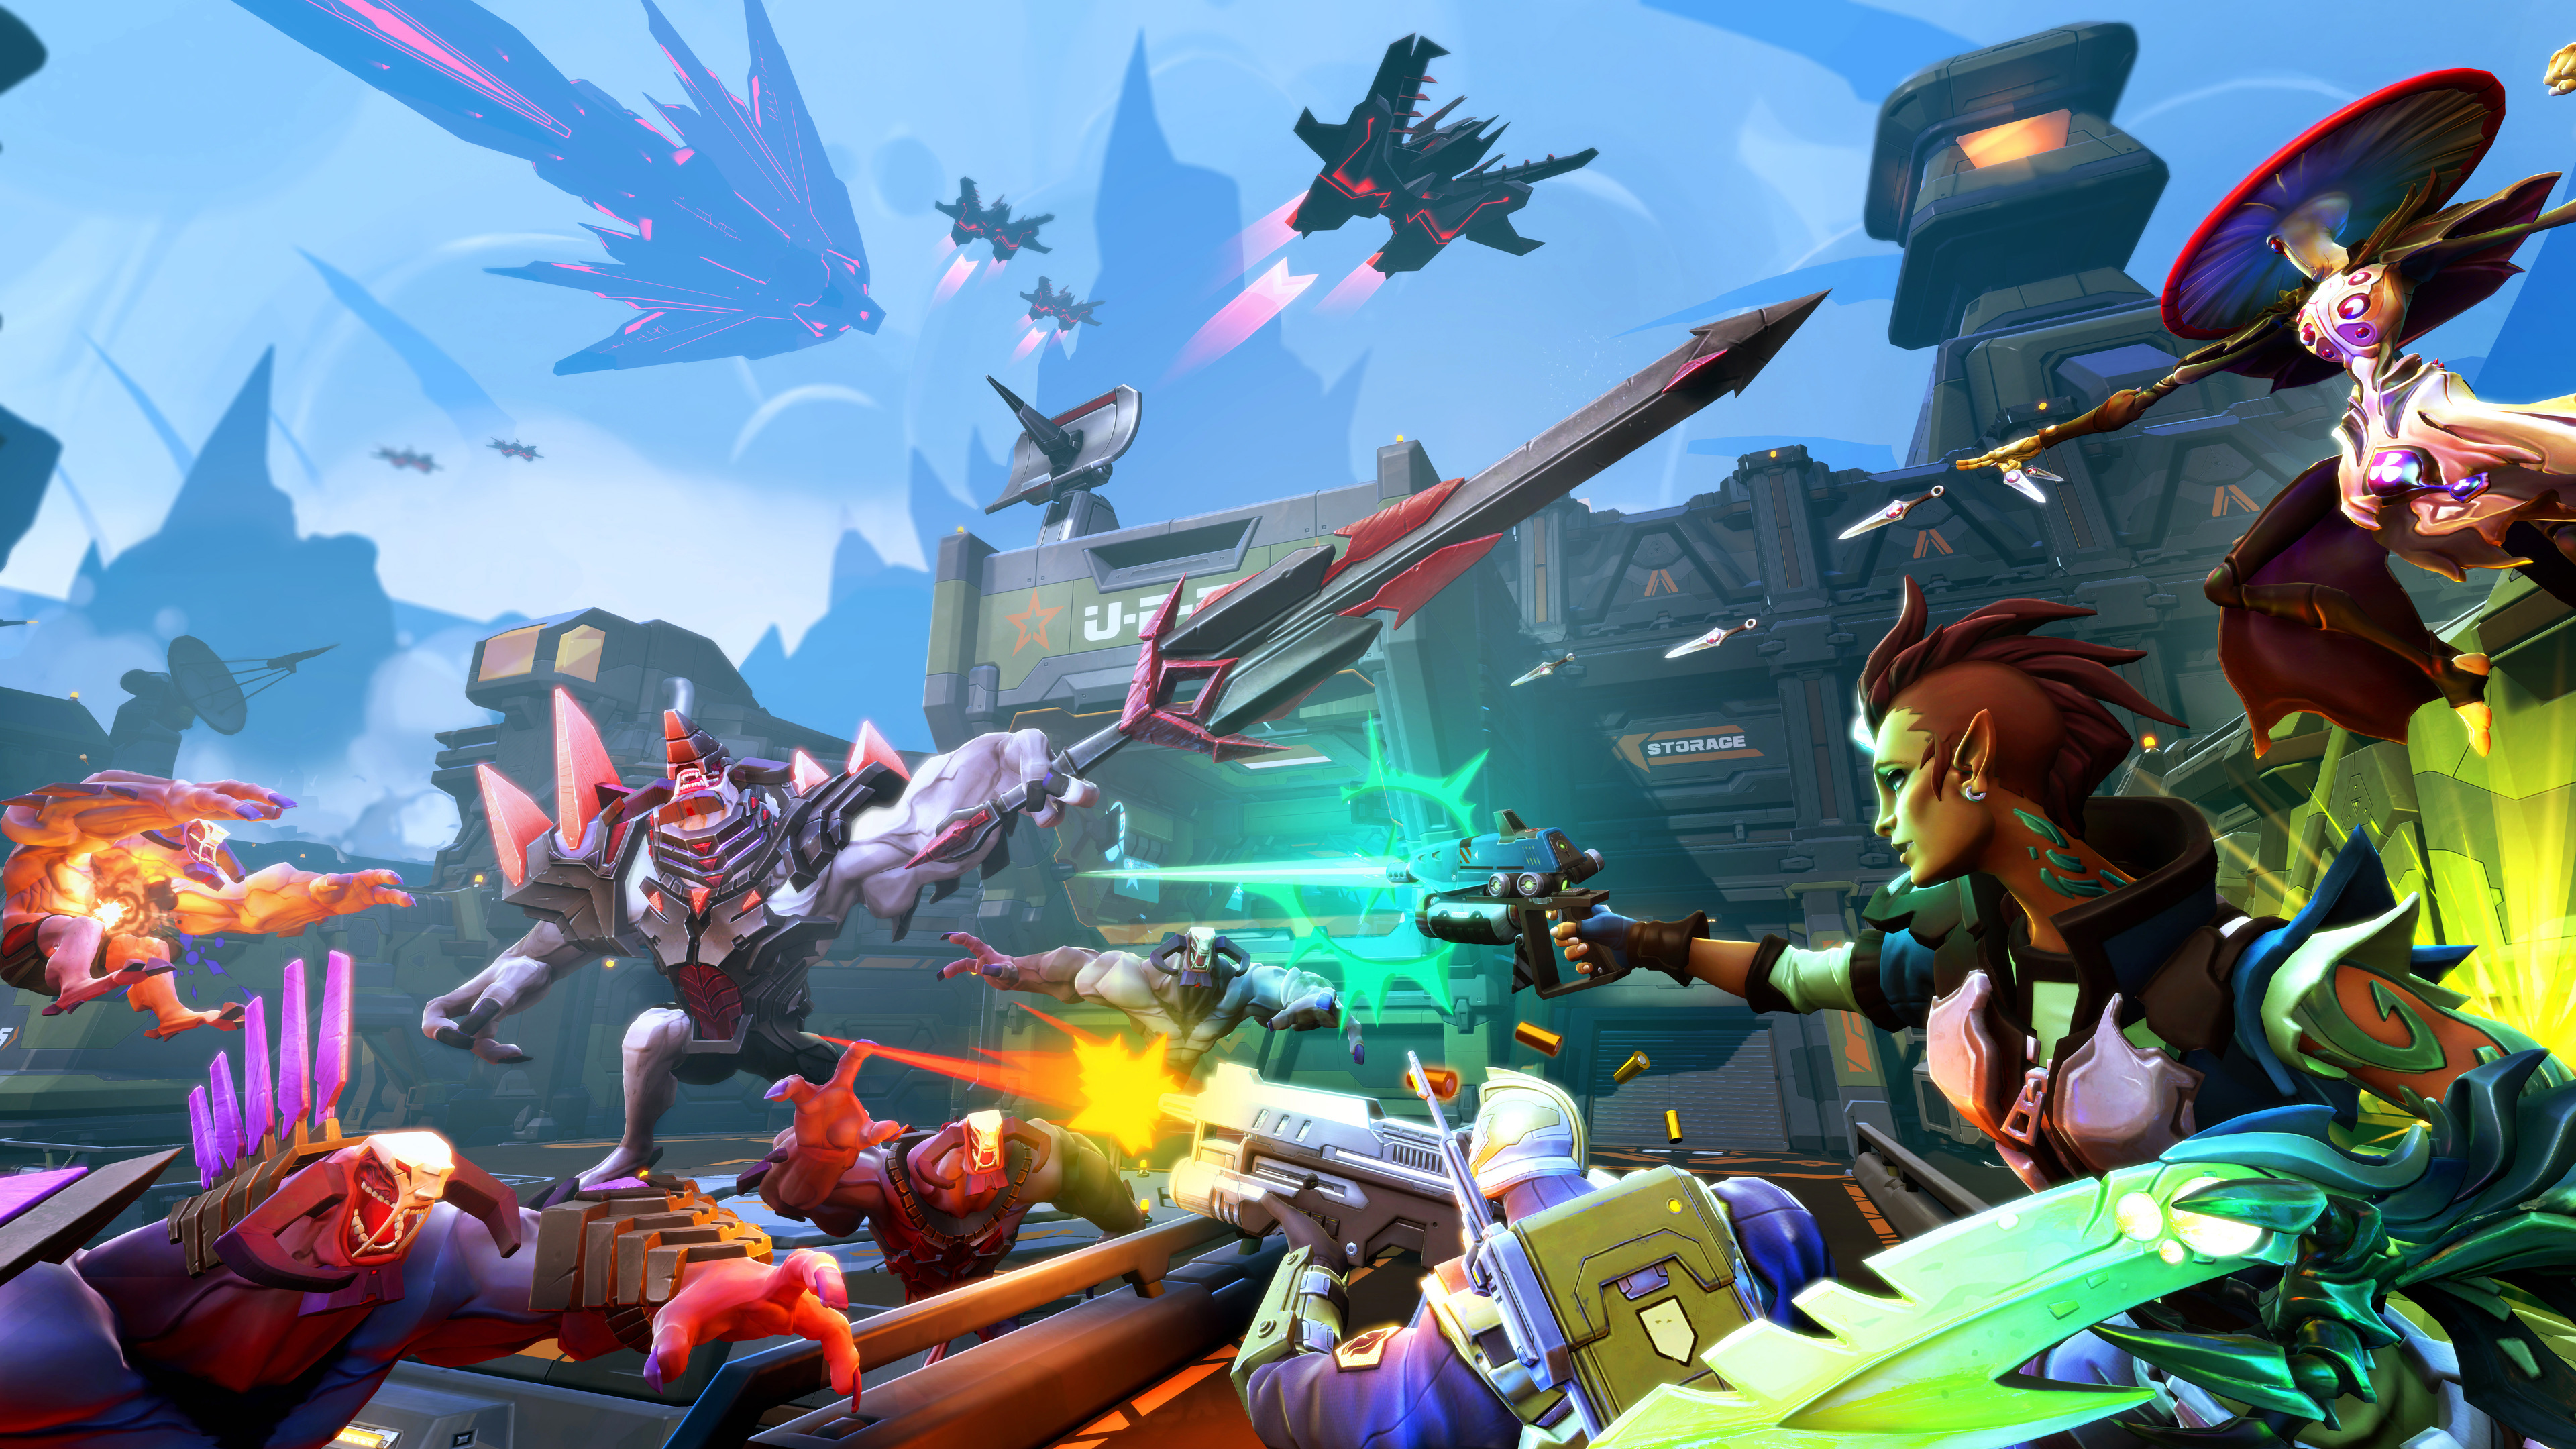 battleborn game 4k 1537691286 - Battleborn Game 4k - xbox games wallpapers, ps games wallpapers, pc games wallpapers, games wallpapers, battleborn wallpapers